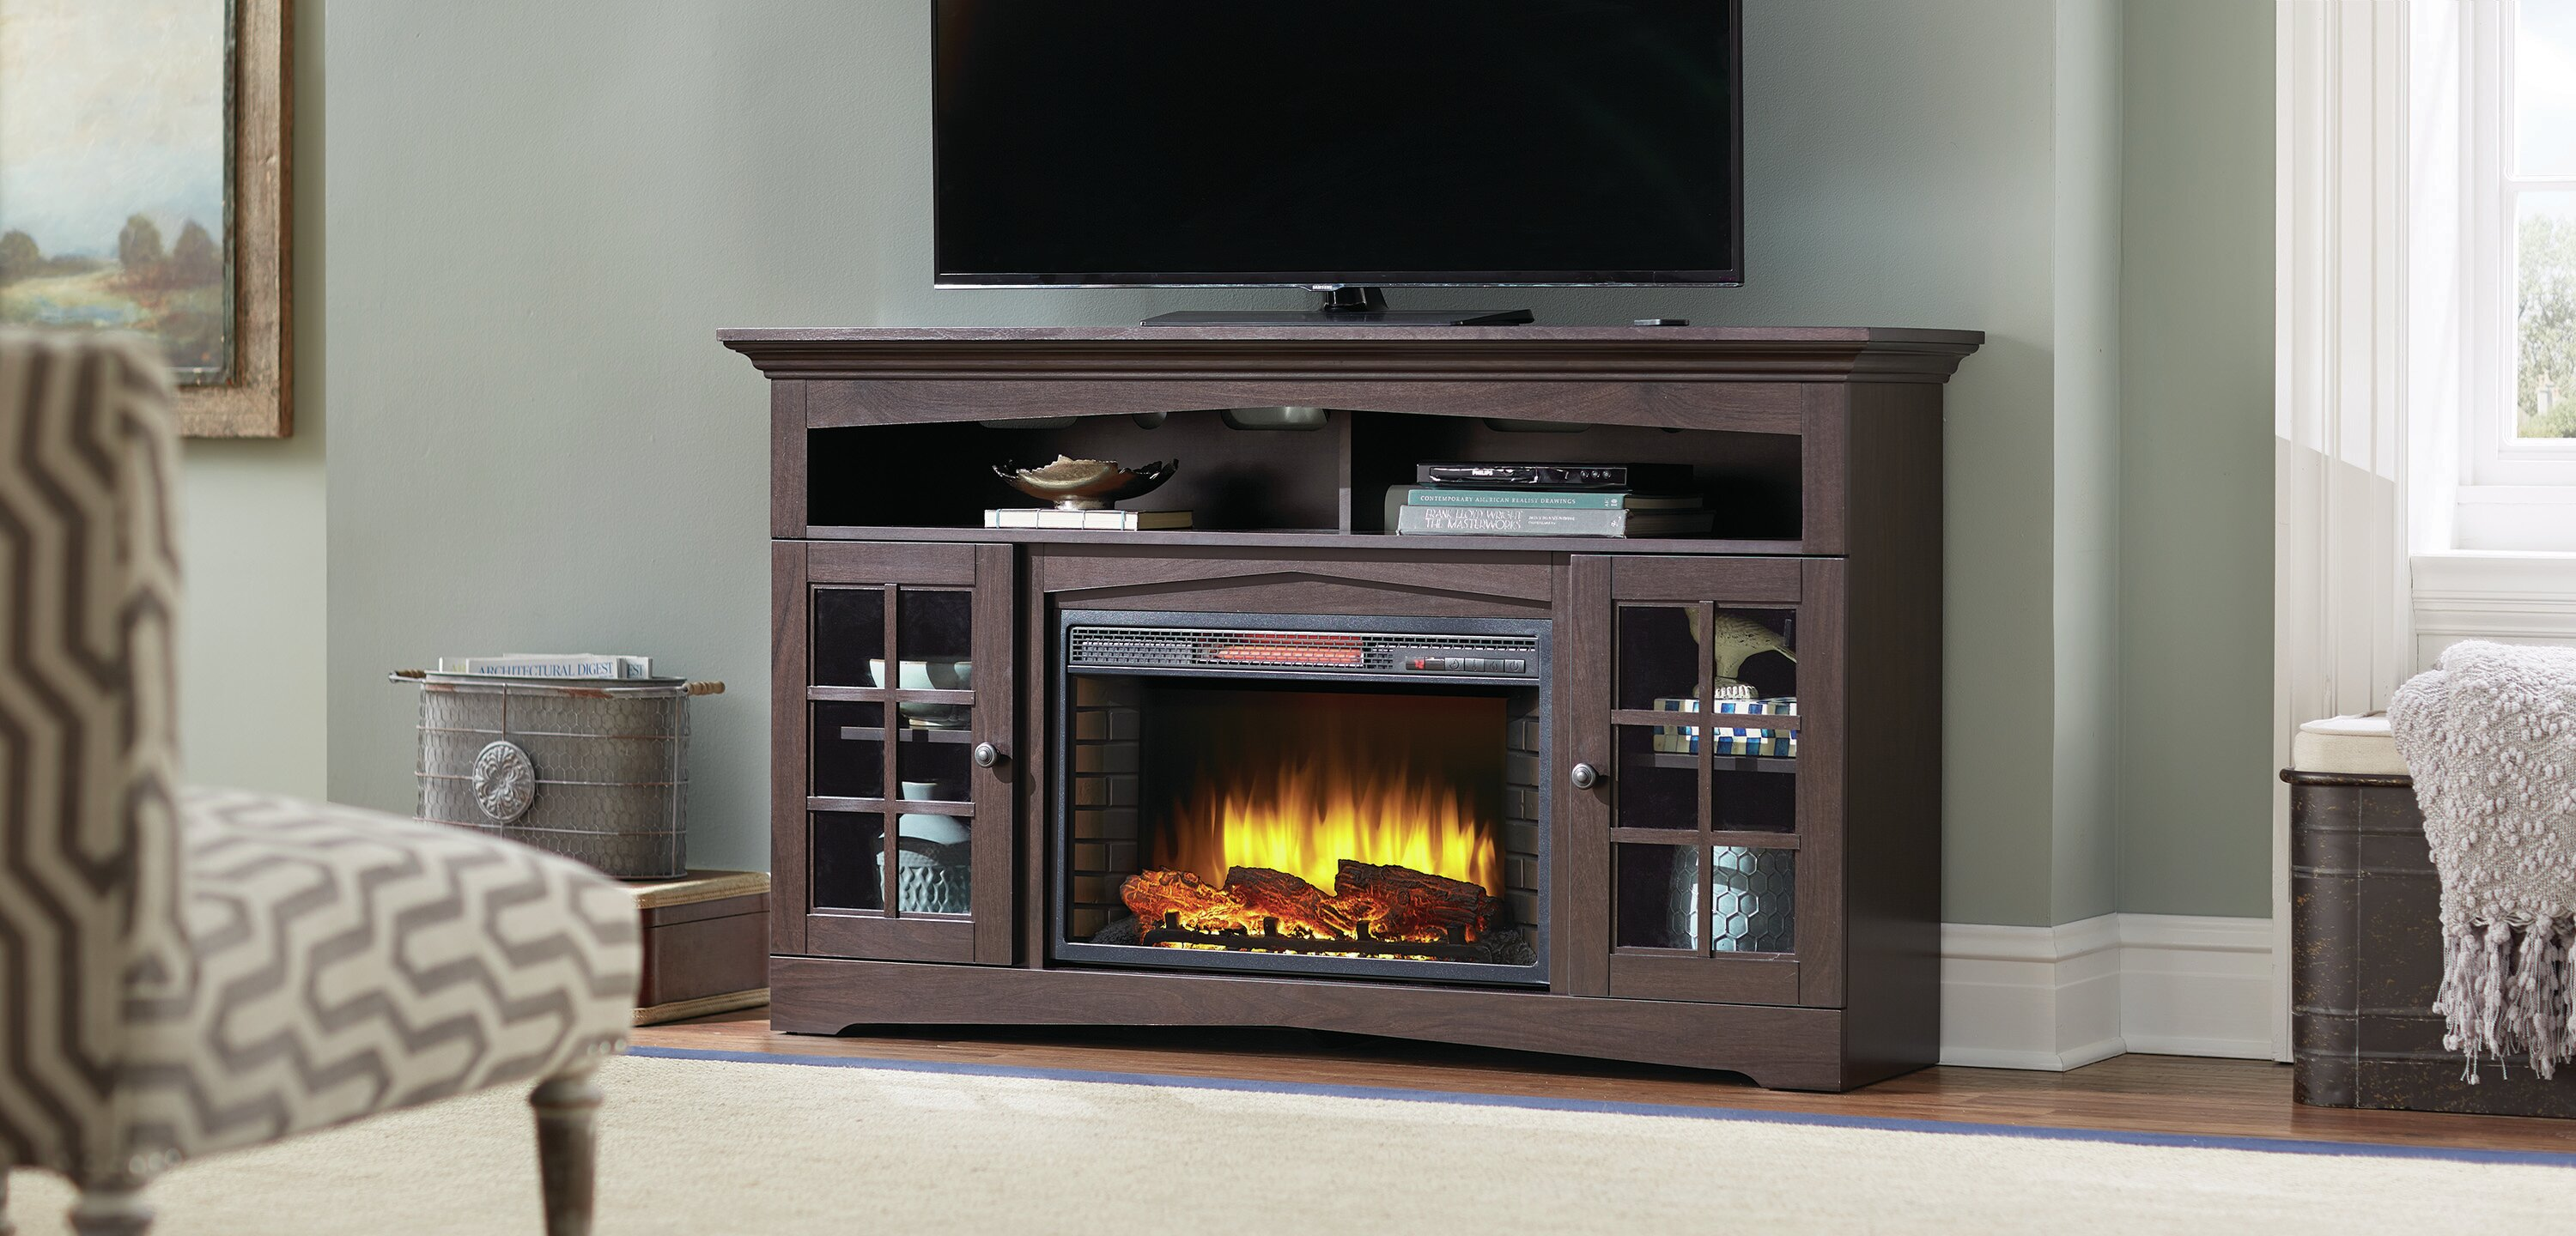 fireplace decorative as corner dining captivating ideas room living wells furniture picture